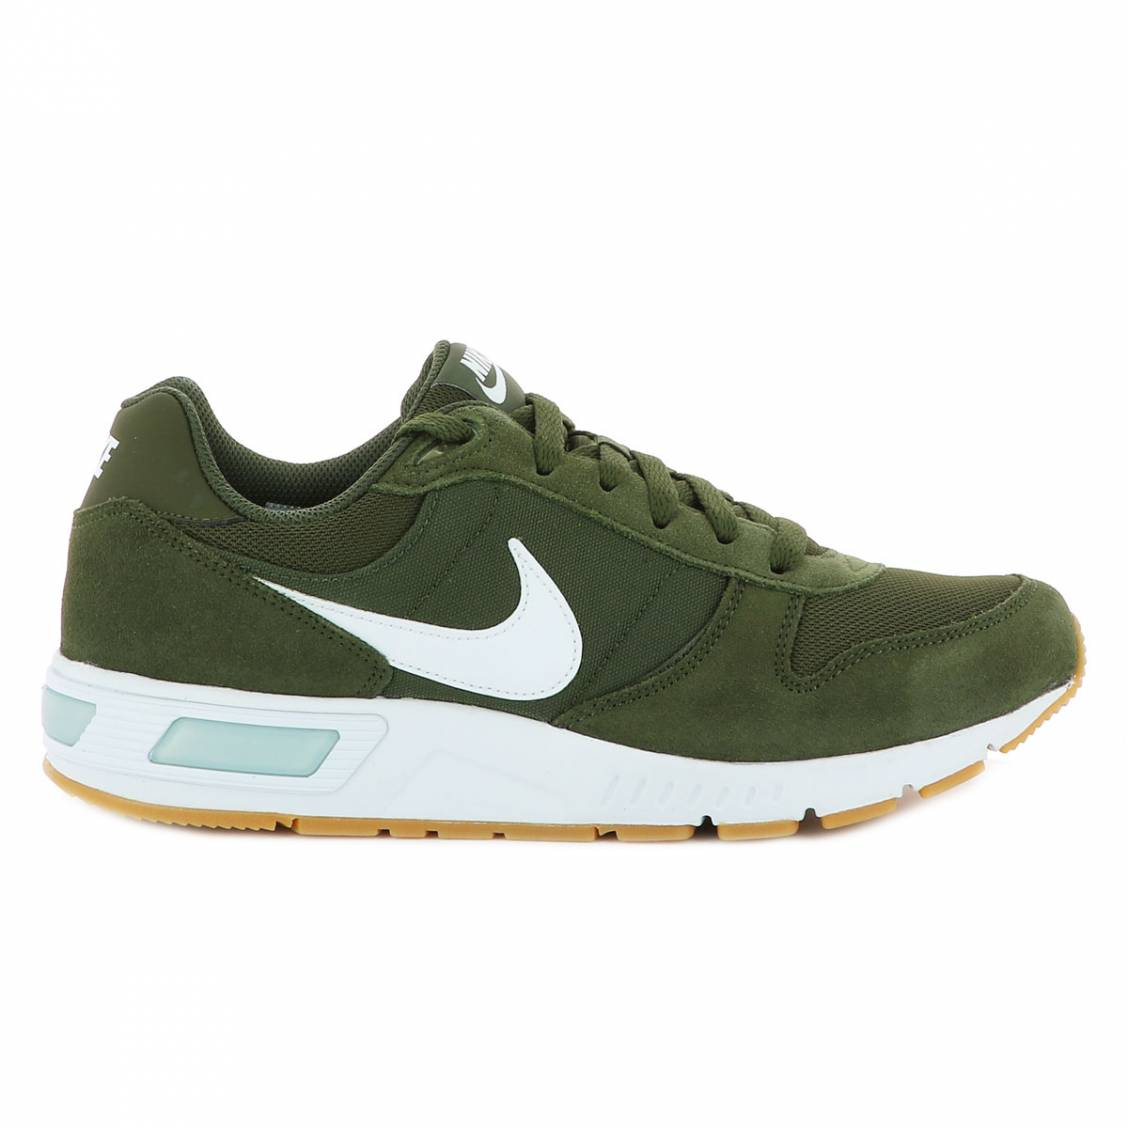 lowest price 44016 42a5a Baskets Nike Nightgazer kaki ...